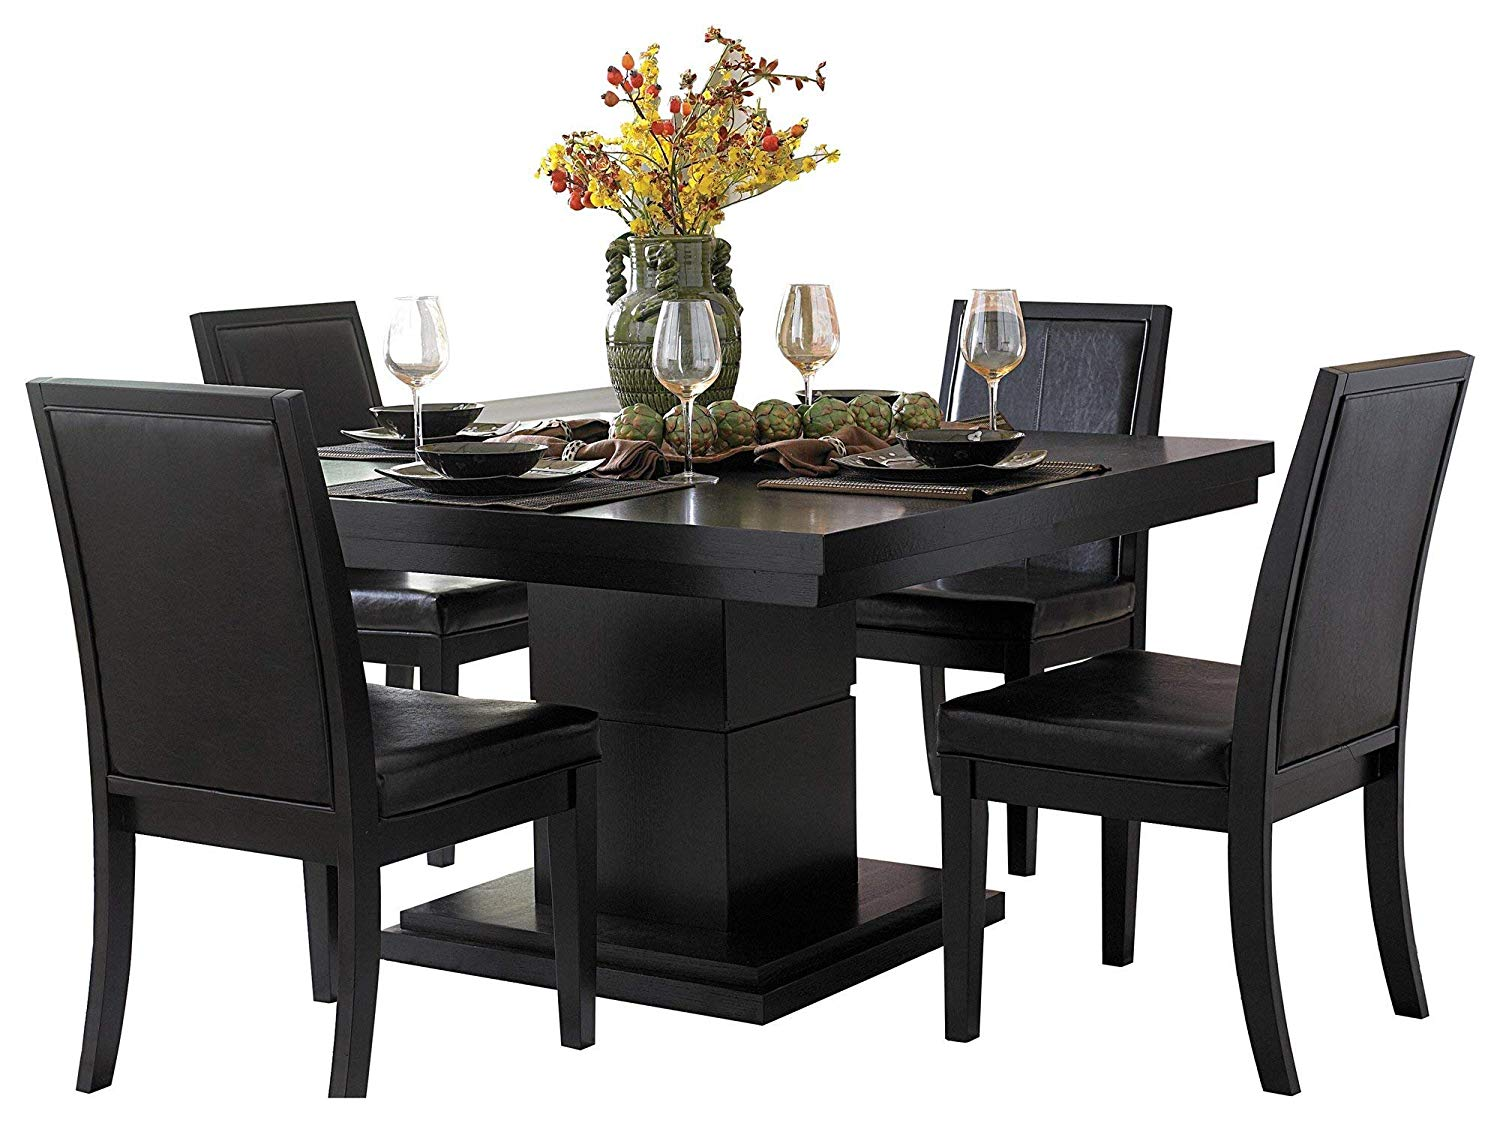 Cento Modern 5pc Dining Set Square Table 4 Chair In Black